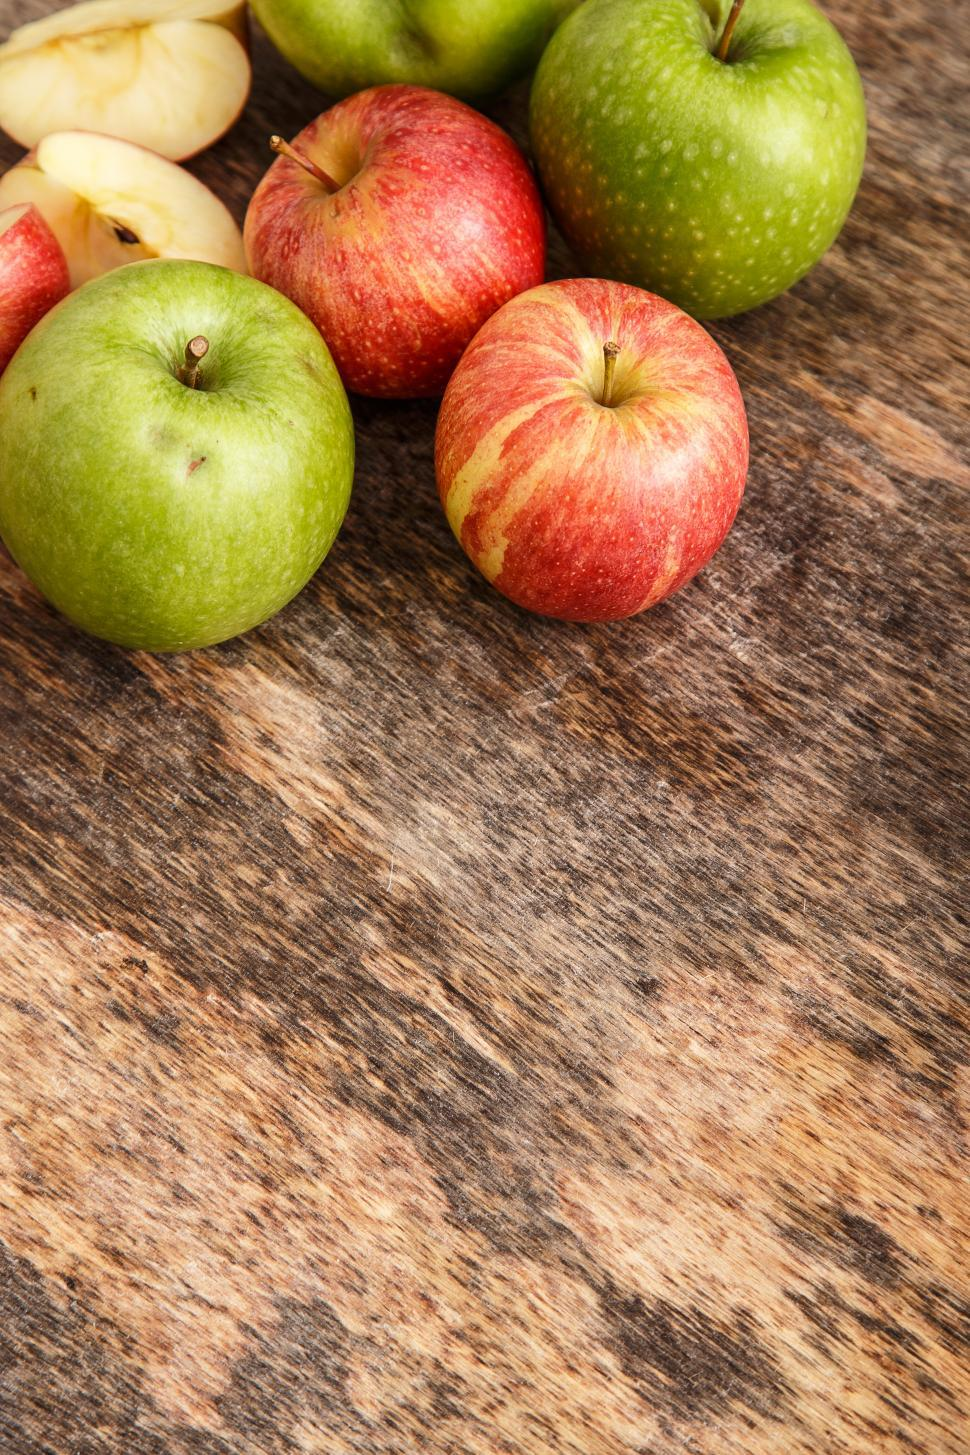 Download Free Stock HD Photo of Apples on the table Online